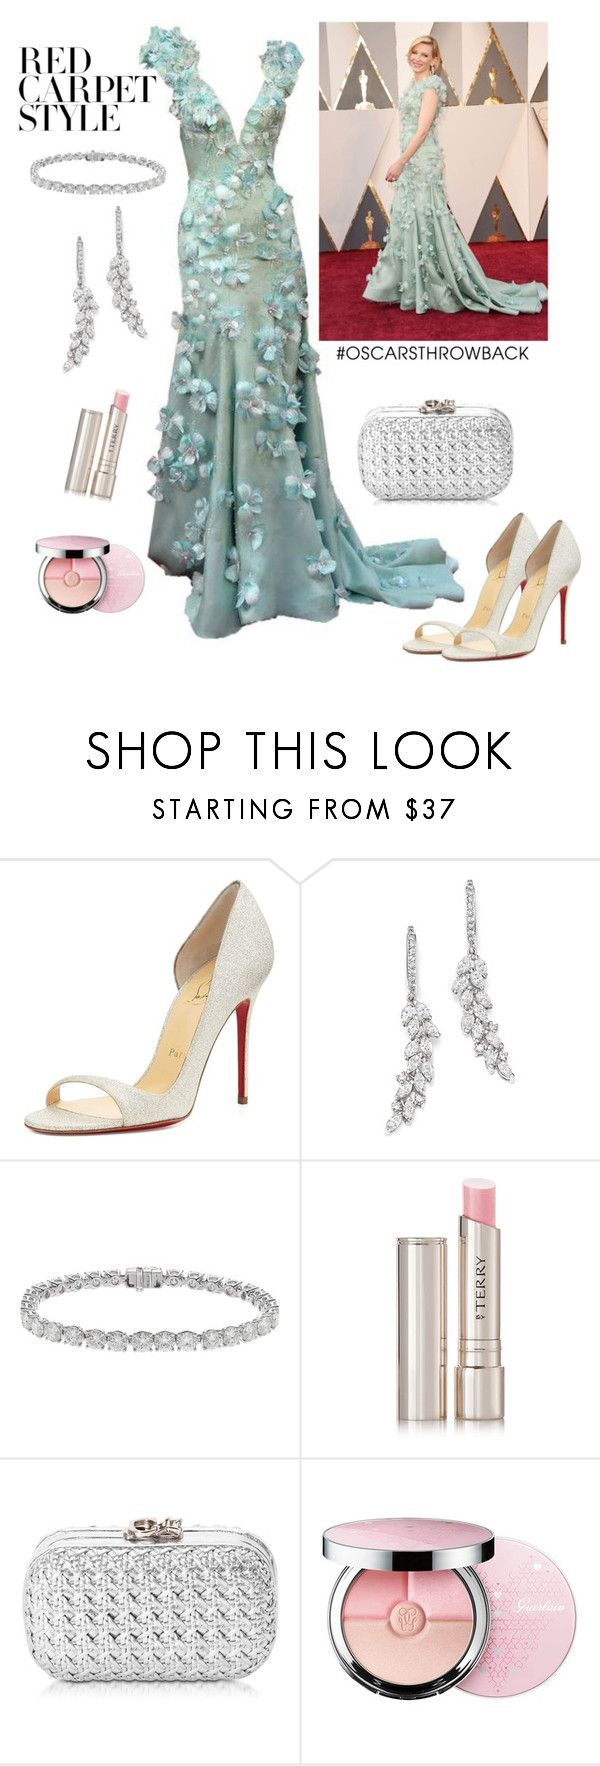 """""""Cate Blanchett Oscars"""" by lavandel ❤ liked on Polyvore featuring Christian Louboutin, Bloomingdale's, By Terry, Corto Moltedo, Guerlain, redcarpetstyle and OscarsThrowback"""